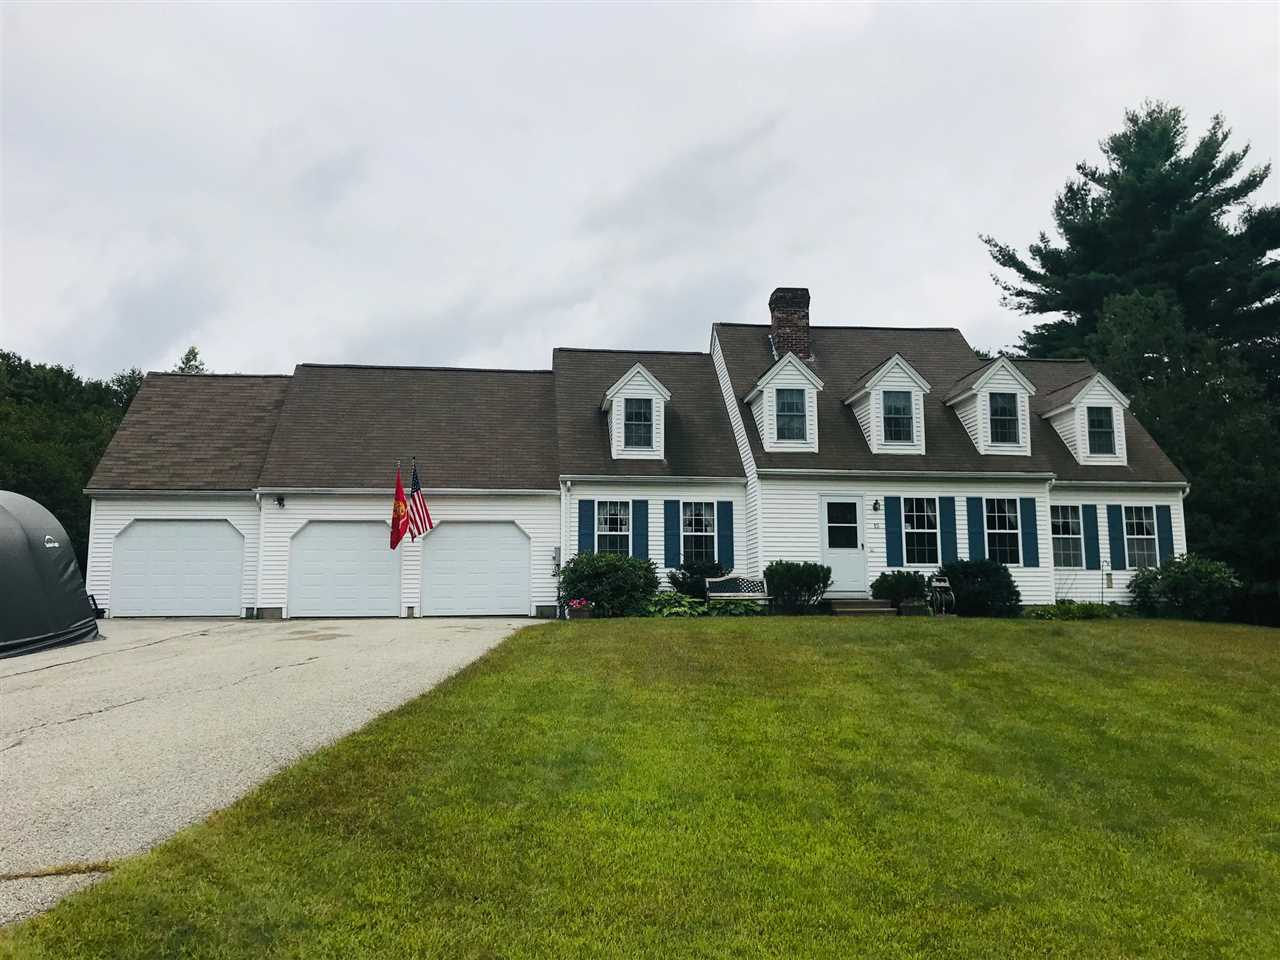 MLS 4775331: 15 Mountain View Drive, New Ipswich NH